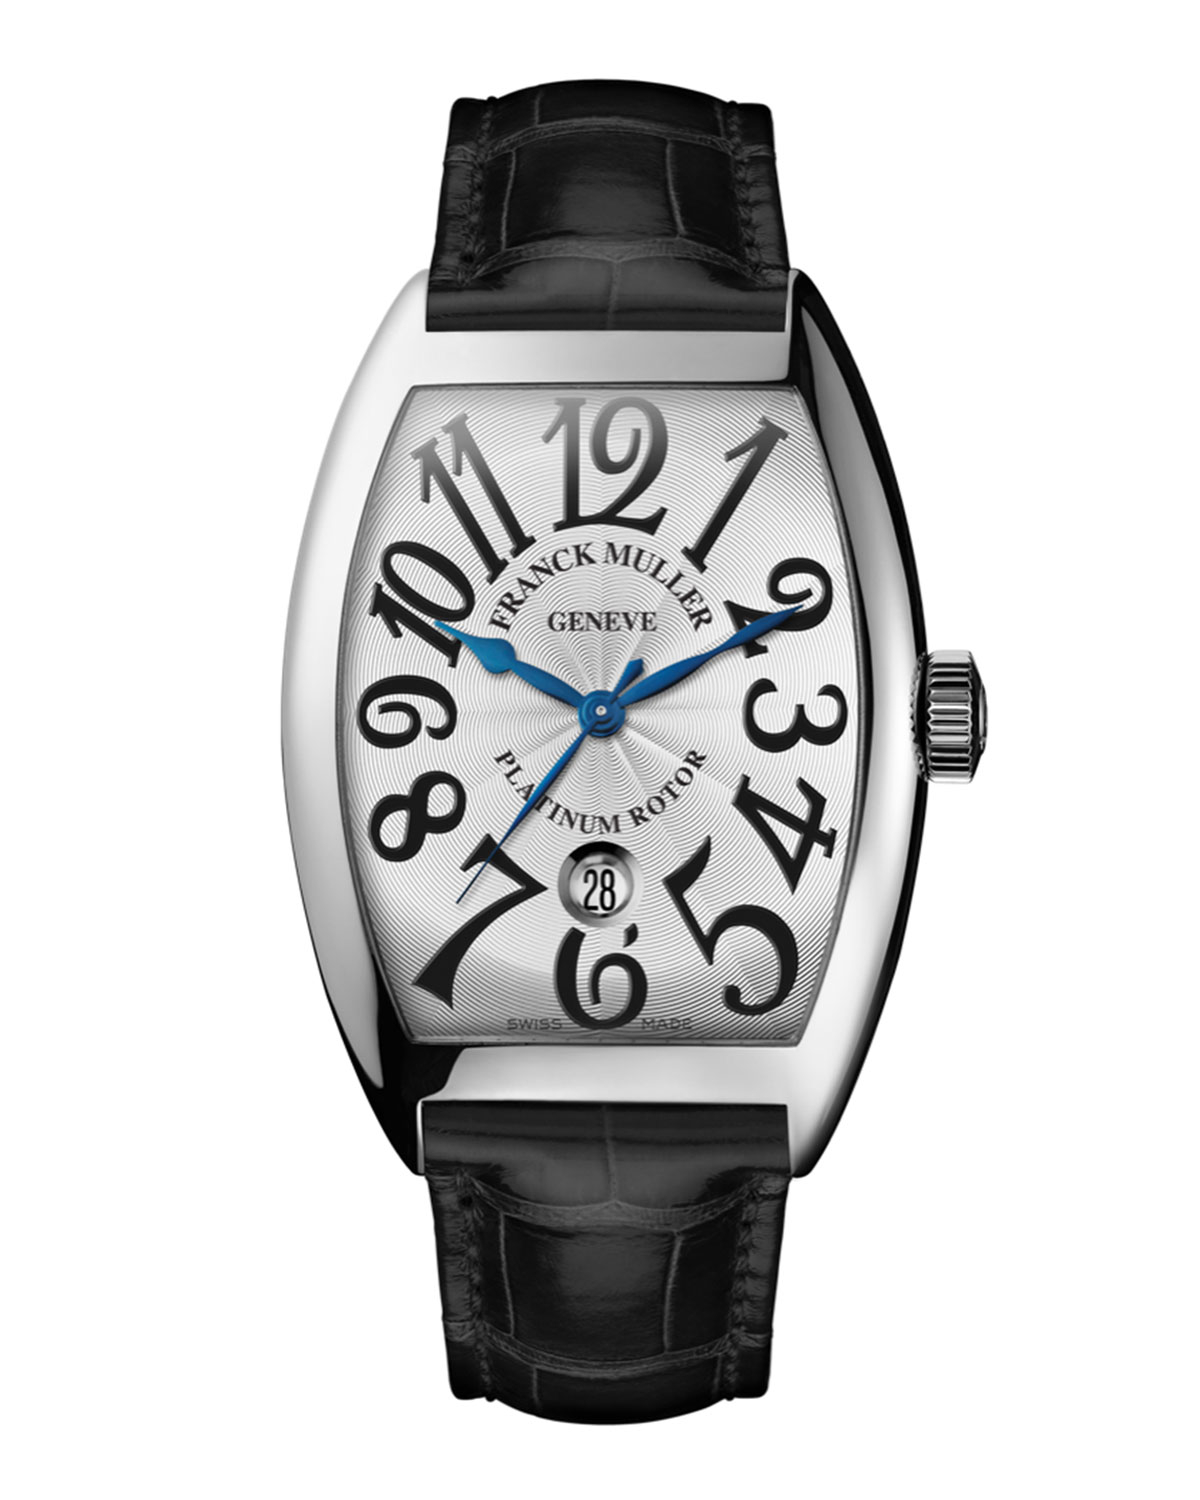 Franck muller men 39 s automatic curvex watch with alligator strap in metallic for men lyst for Franck muller watches